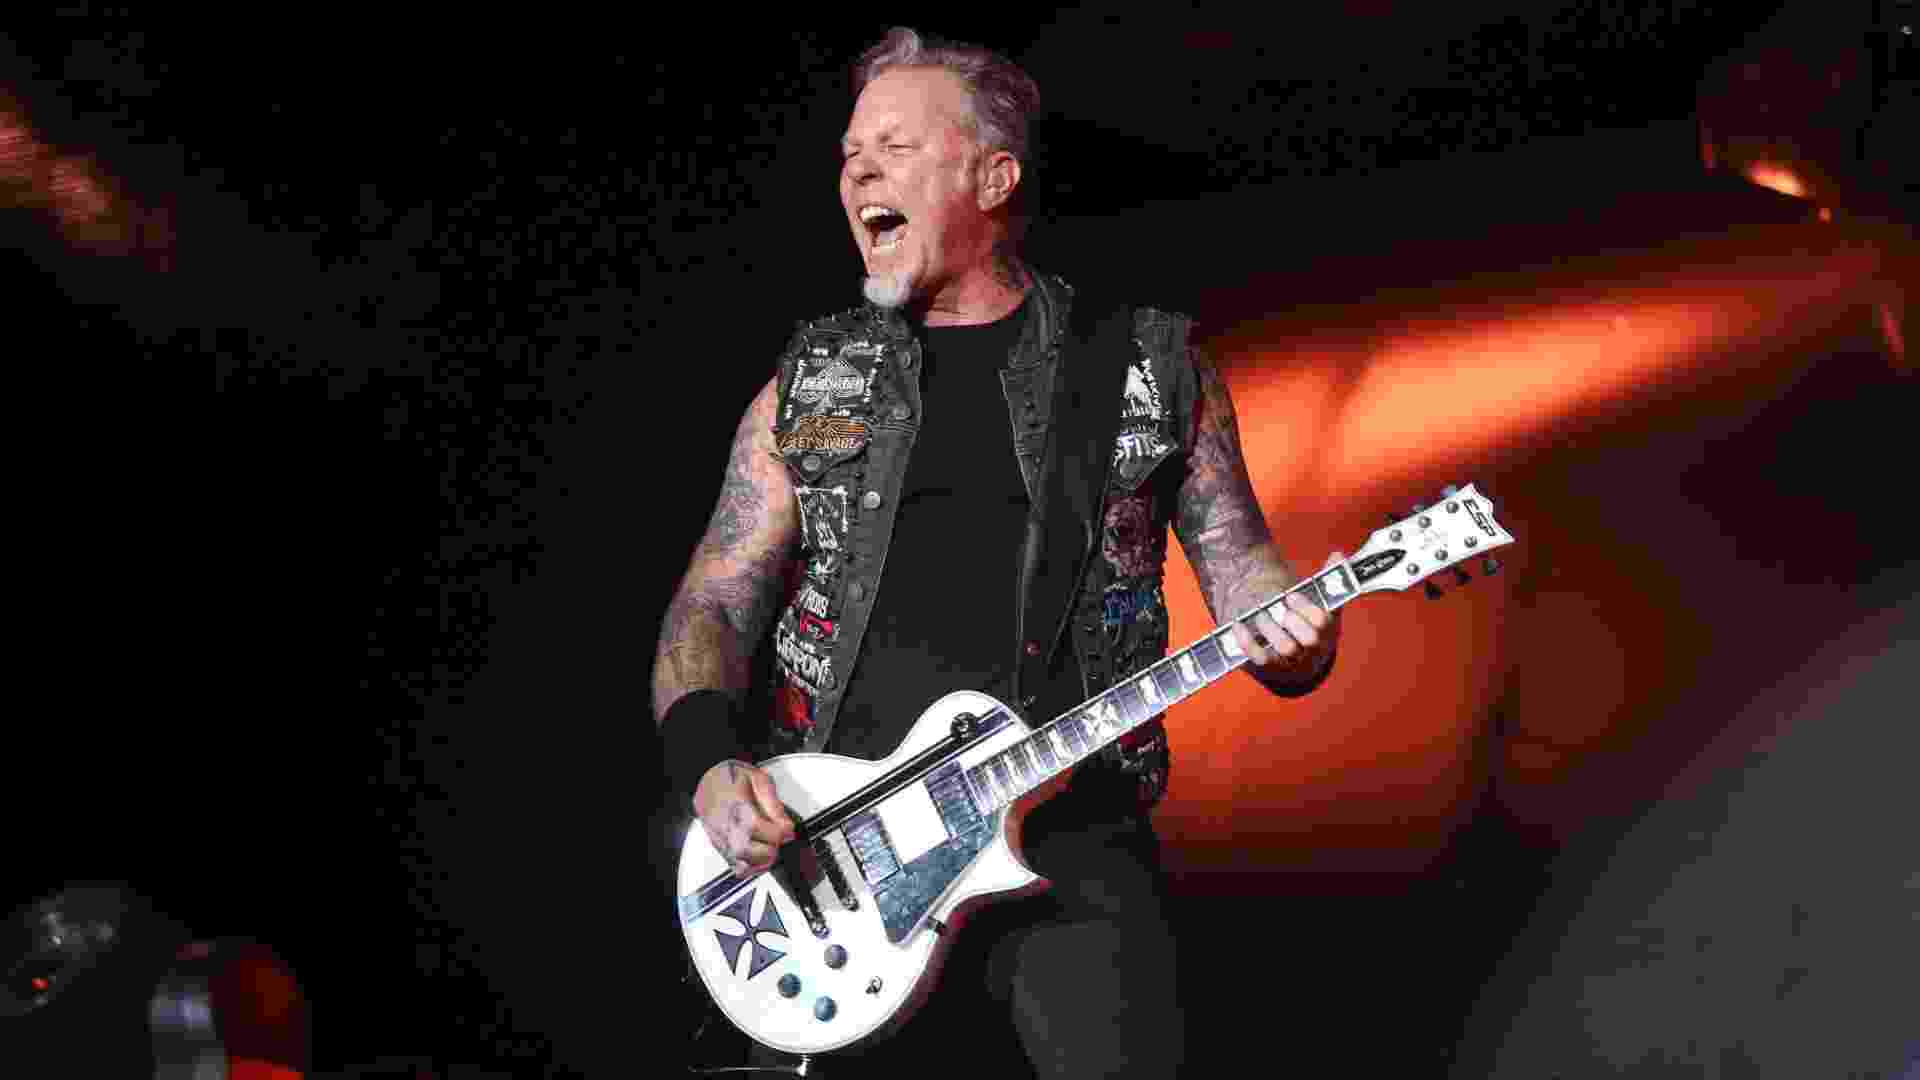 19.set.2015 - James Hetfield do Metallica no show do grupo de heavy metal no palco Mundo no segundo dia do Rock in Rio 2015 - Fernando Maia/UOL